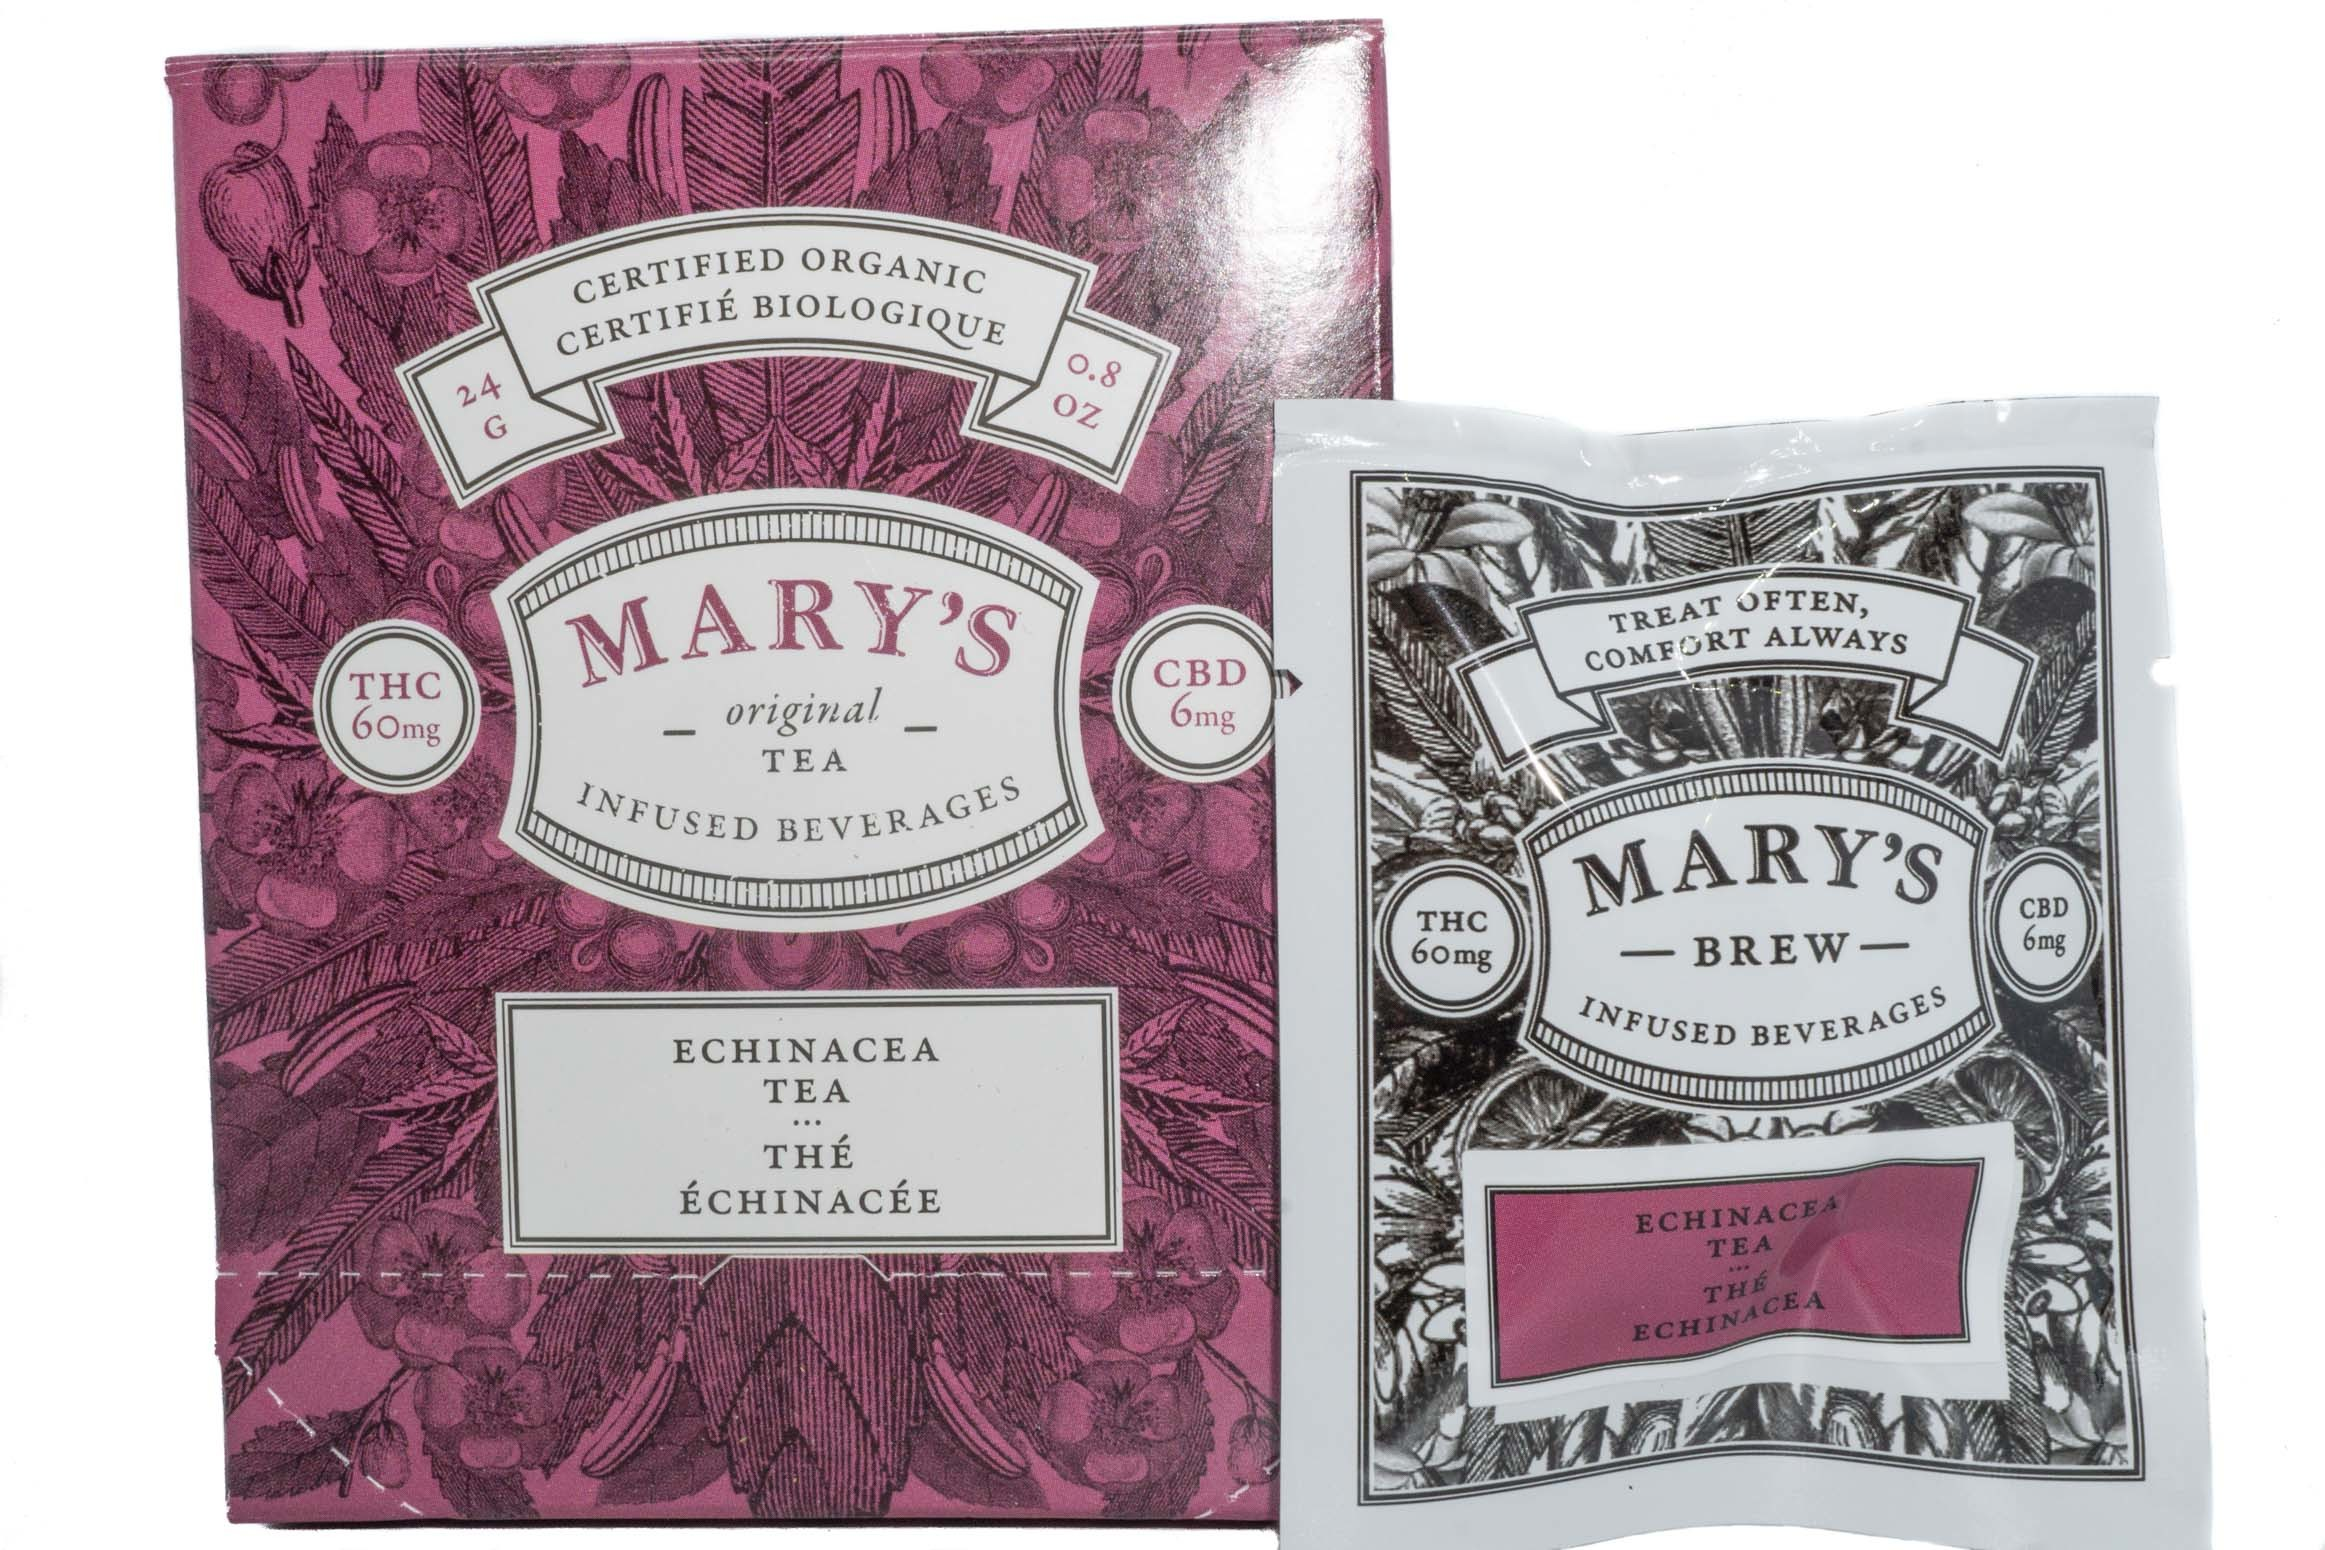 Mary's Wellness Echinacea Tea (Single Sachet) (60mg THC/6mg CBD) 01238